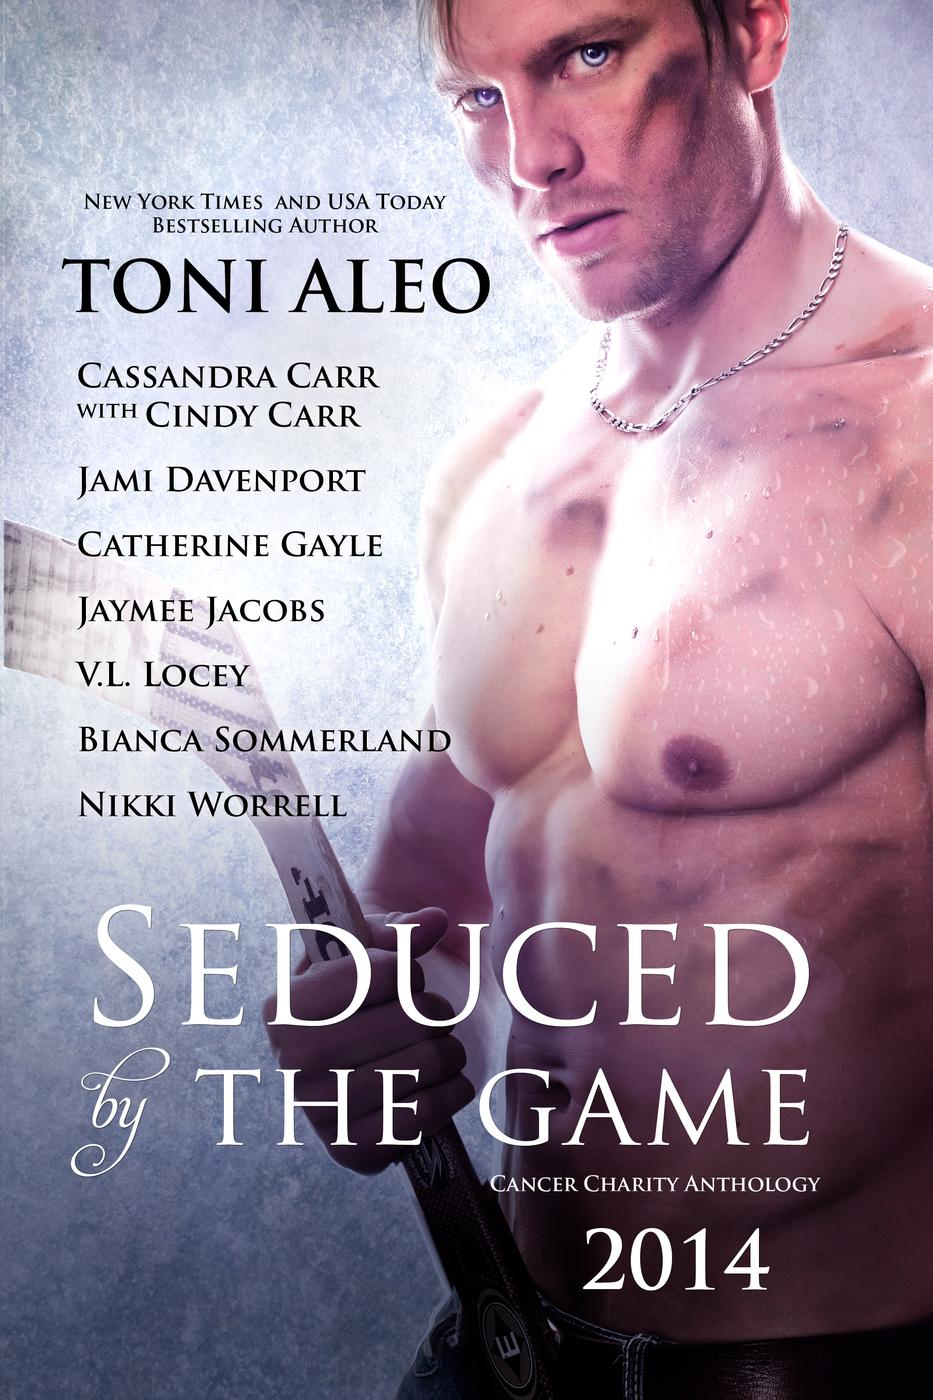 Cassandra Carr, Catherine Gayle, Jami Davenport, Jaymee Jacobs, Nikki Worrell, Toni Aleo, V. L. Locey  Bianca Sommerland - Seduced by The Game - A Charity Anthology